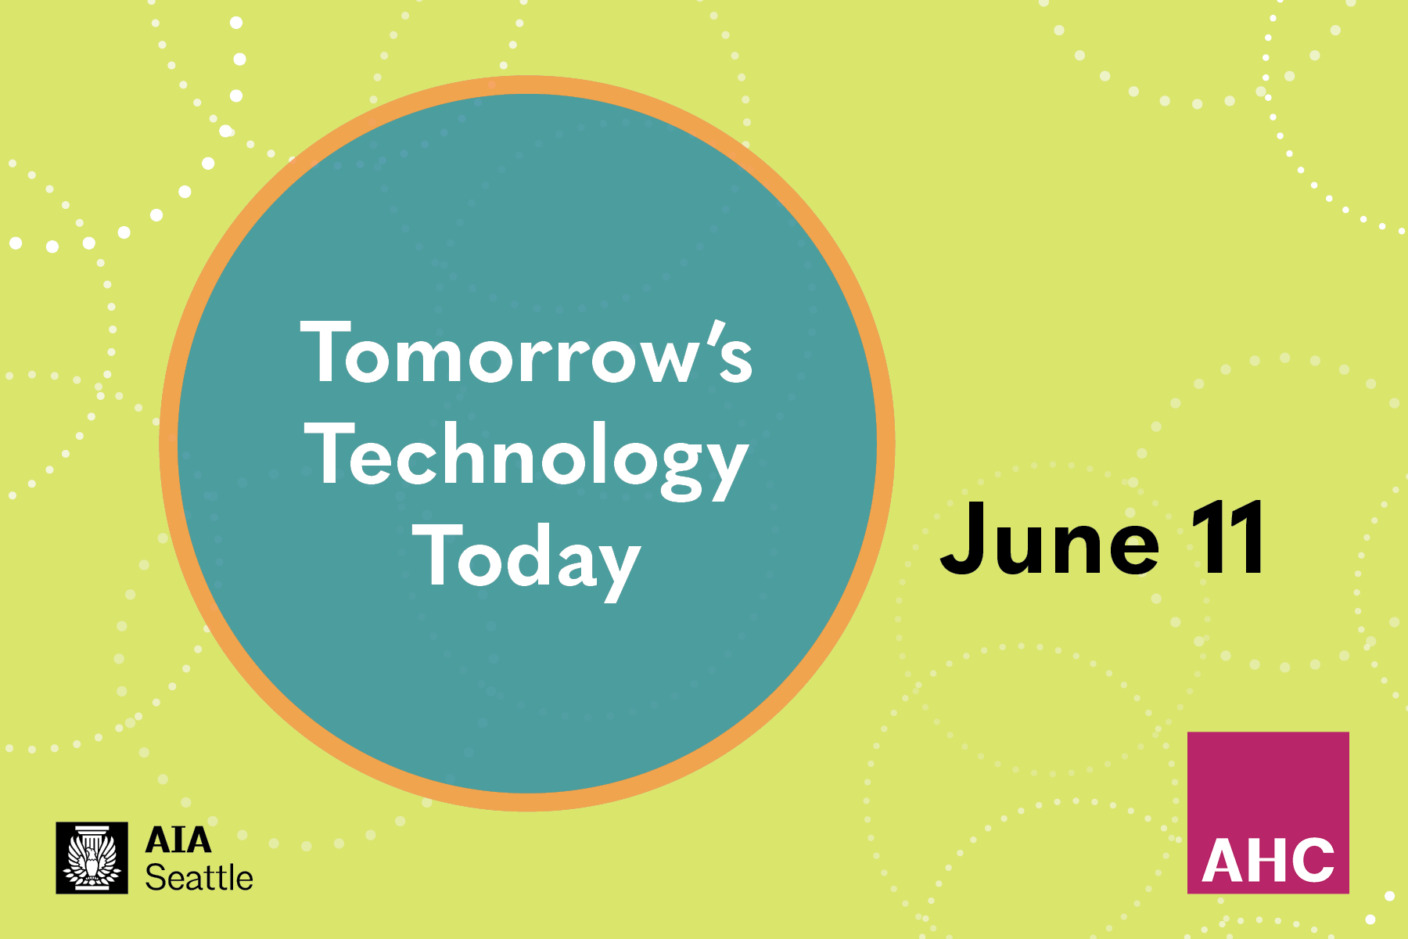 This page is intended only for participants of Tomorrow's Technology Today with AHC